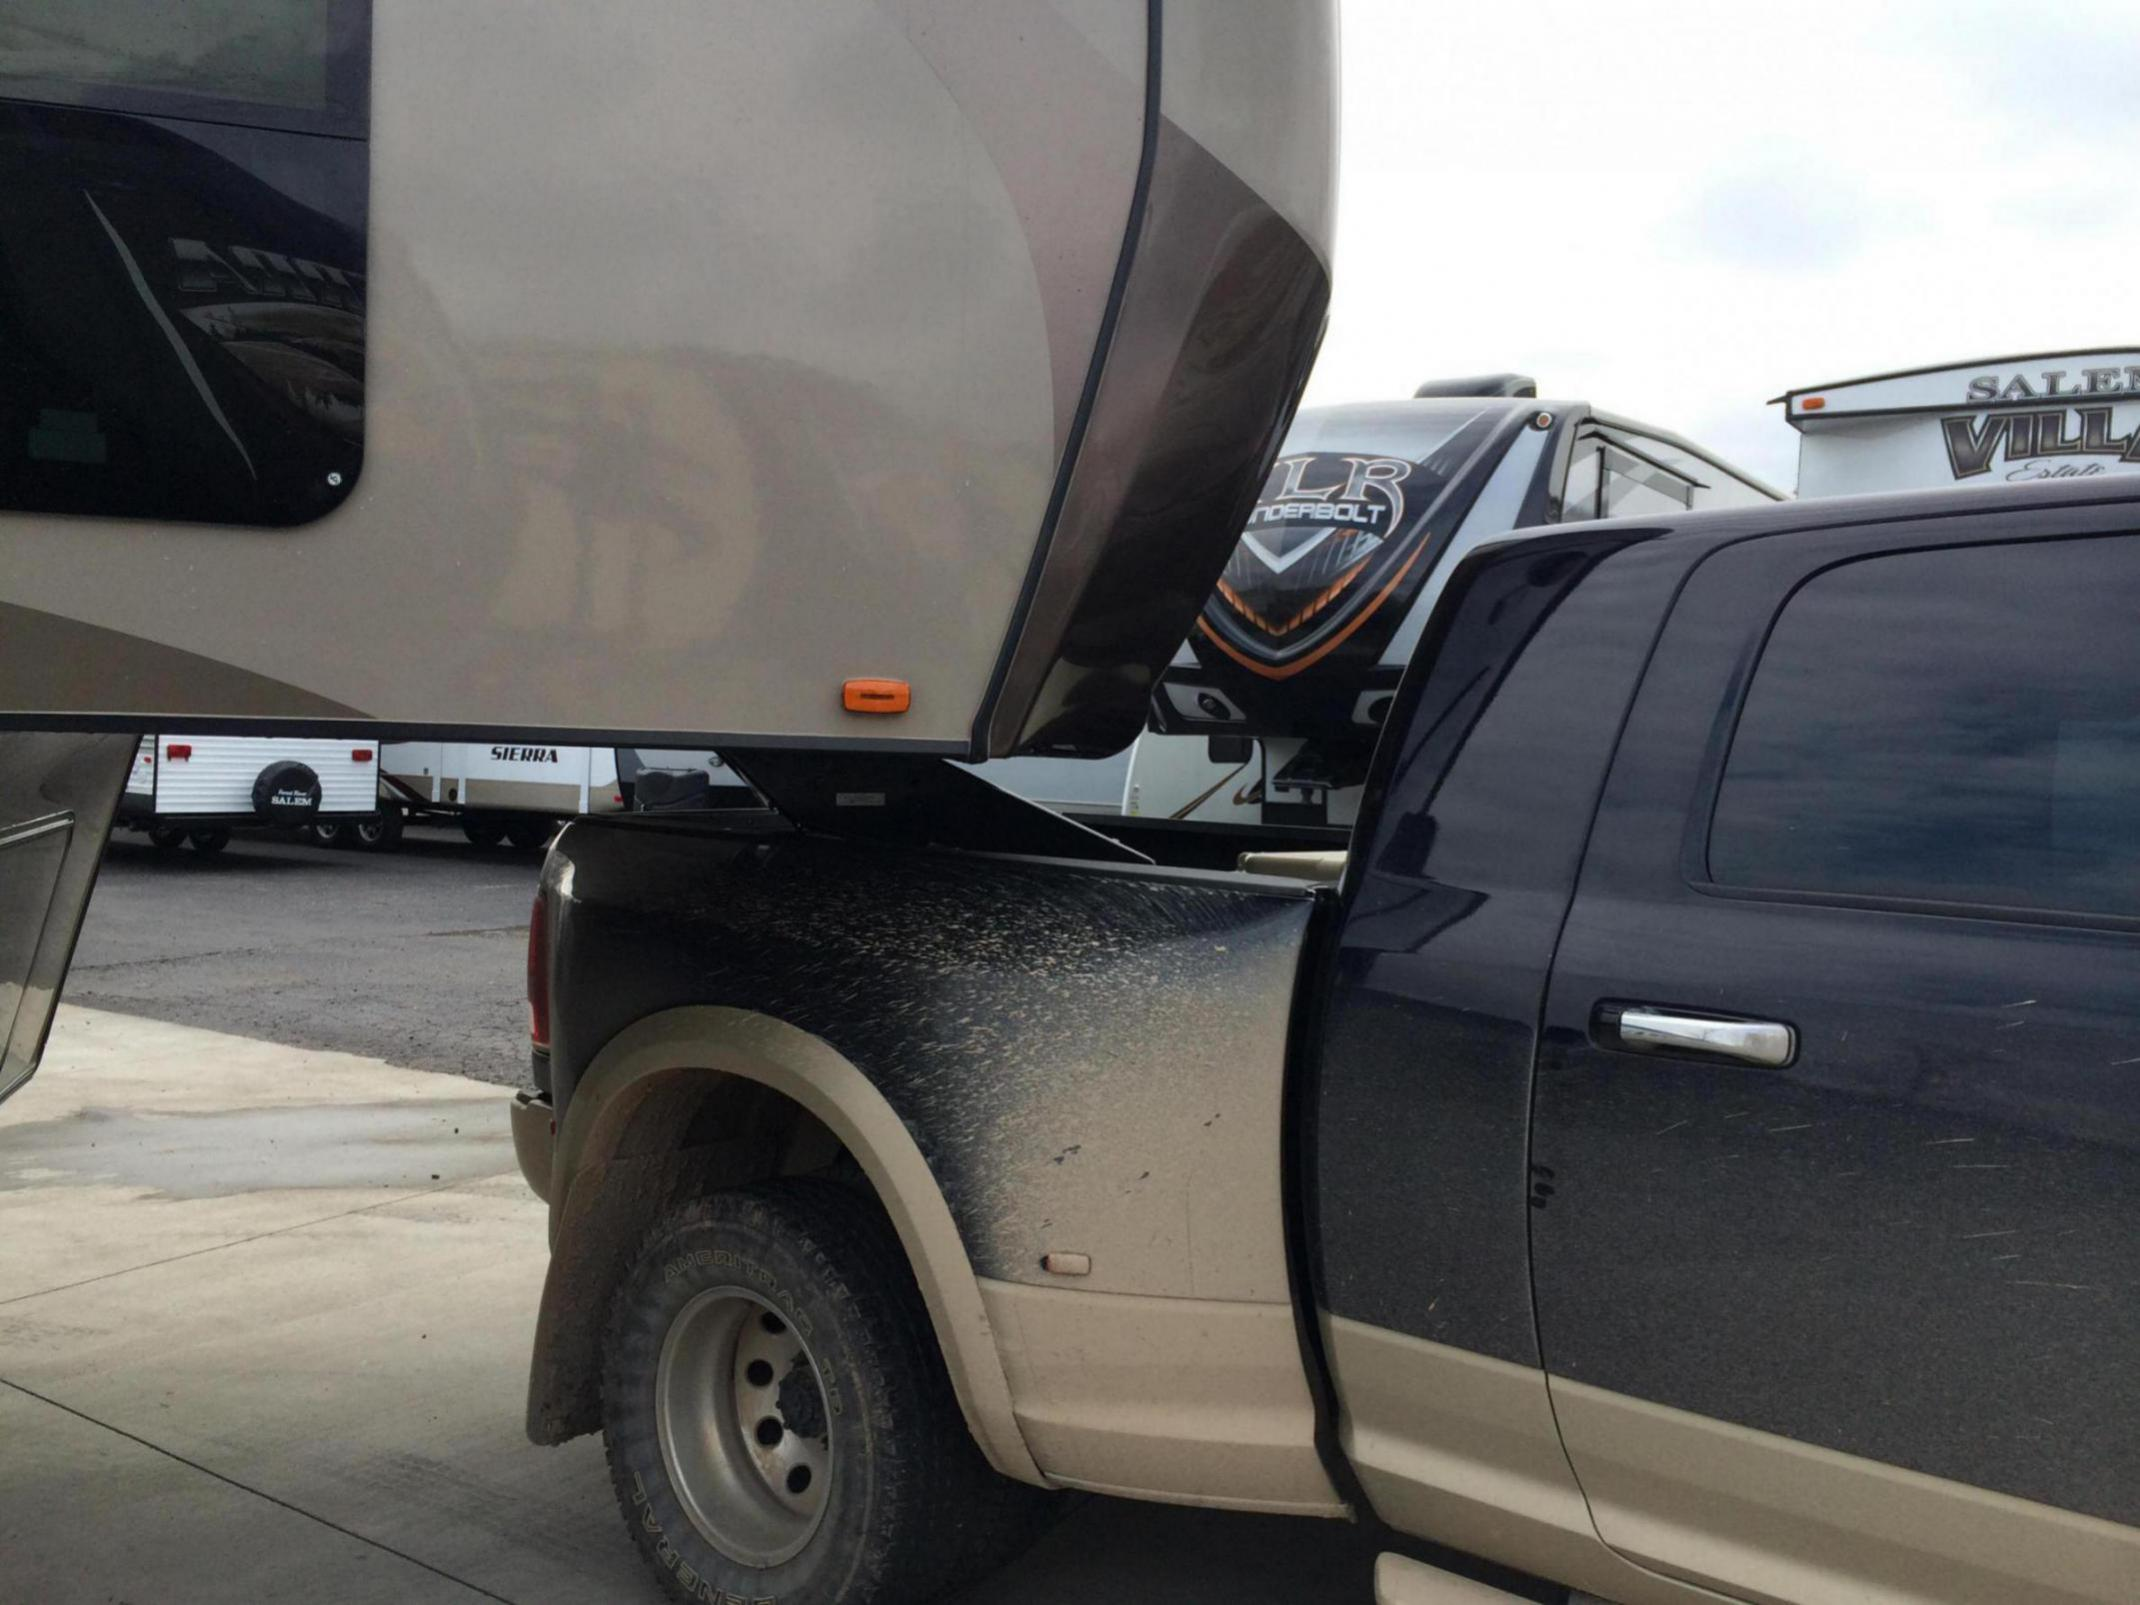 Dually Short Bed >> UPDATE: Towing 5th wheel w/ Megacab shortbed - Dodge Cummins Diesel Forum